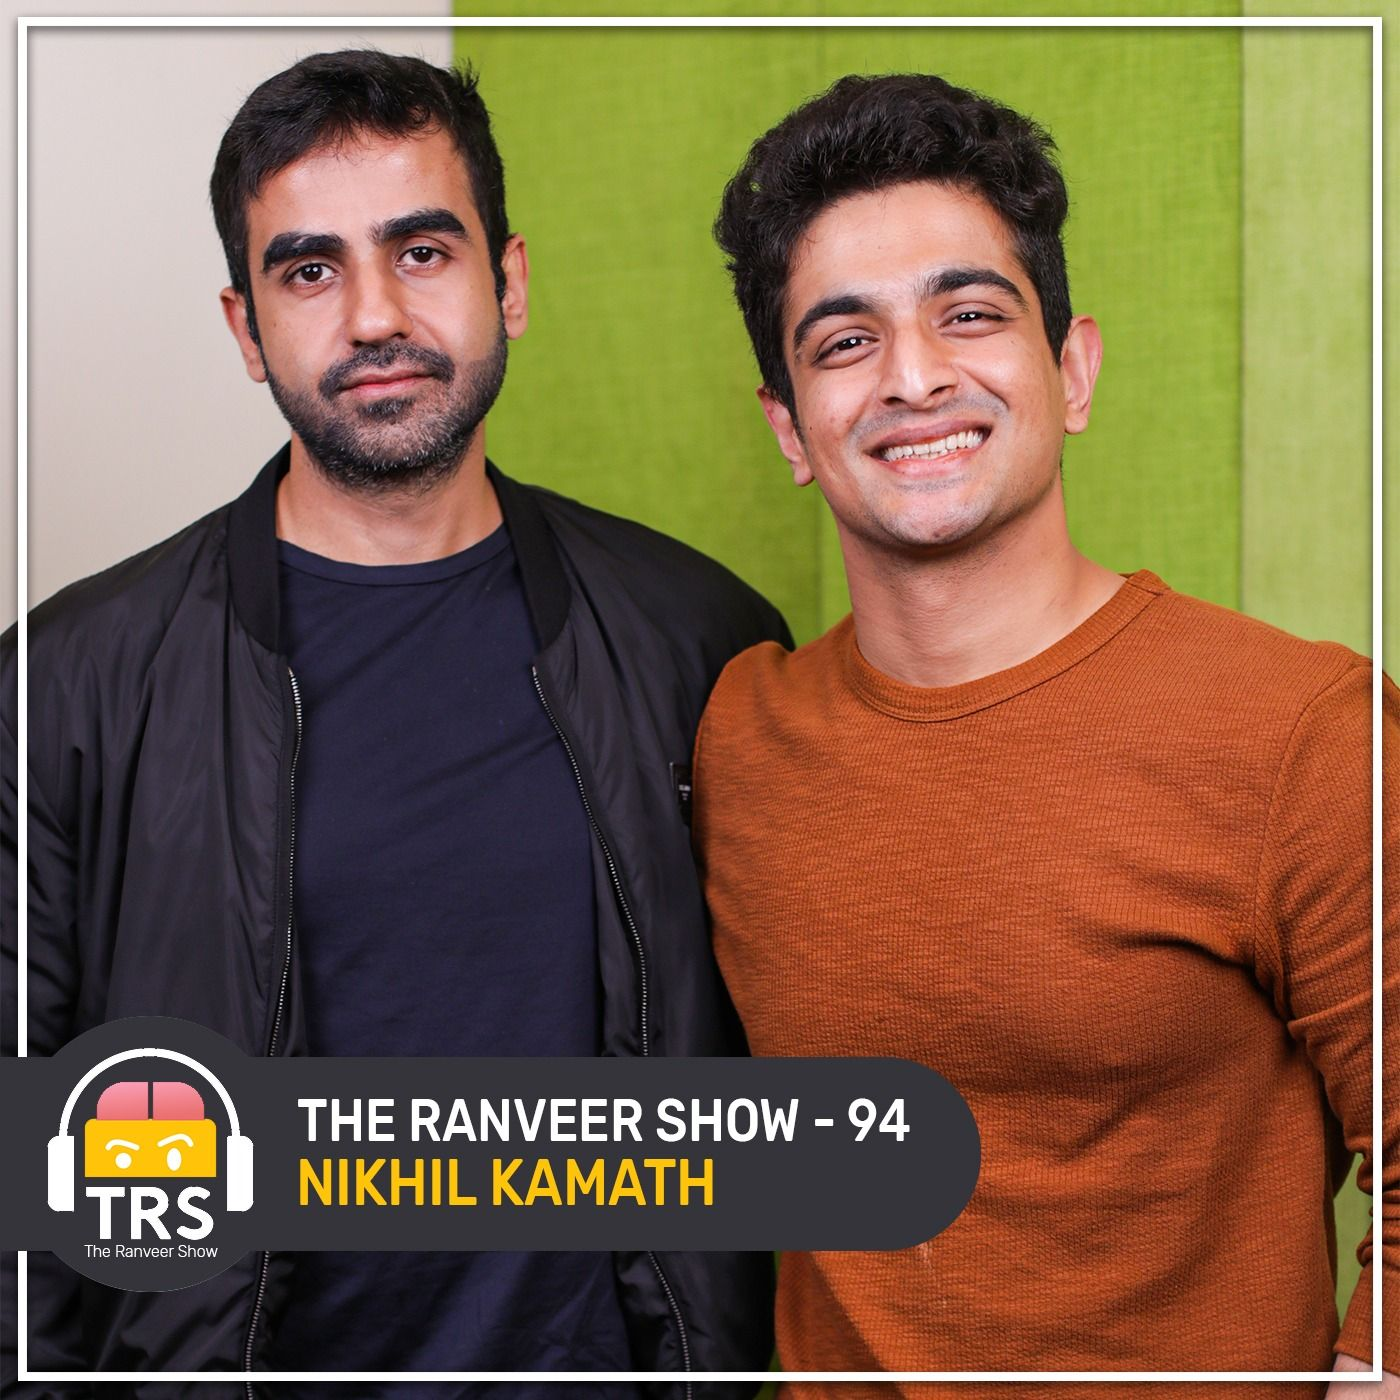 Zerodha's Nikhil Kamath On Dropping Out Of School To Become Successful | The Ranveer Show 94